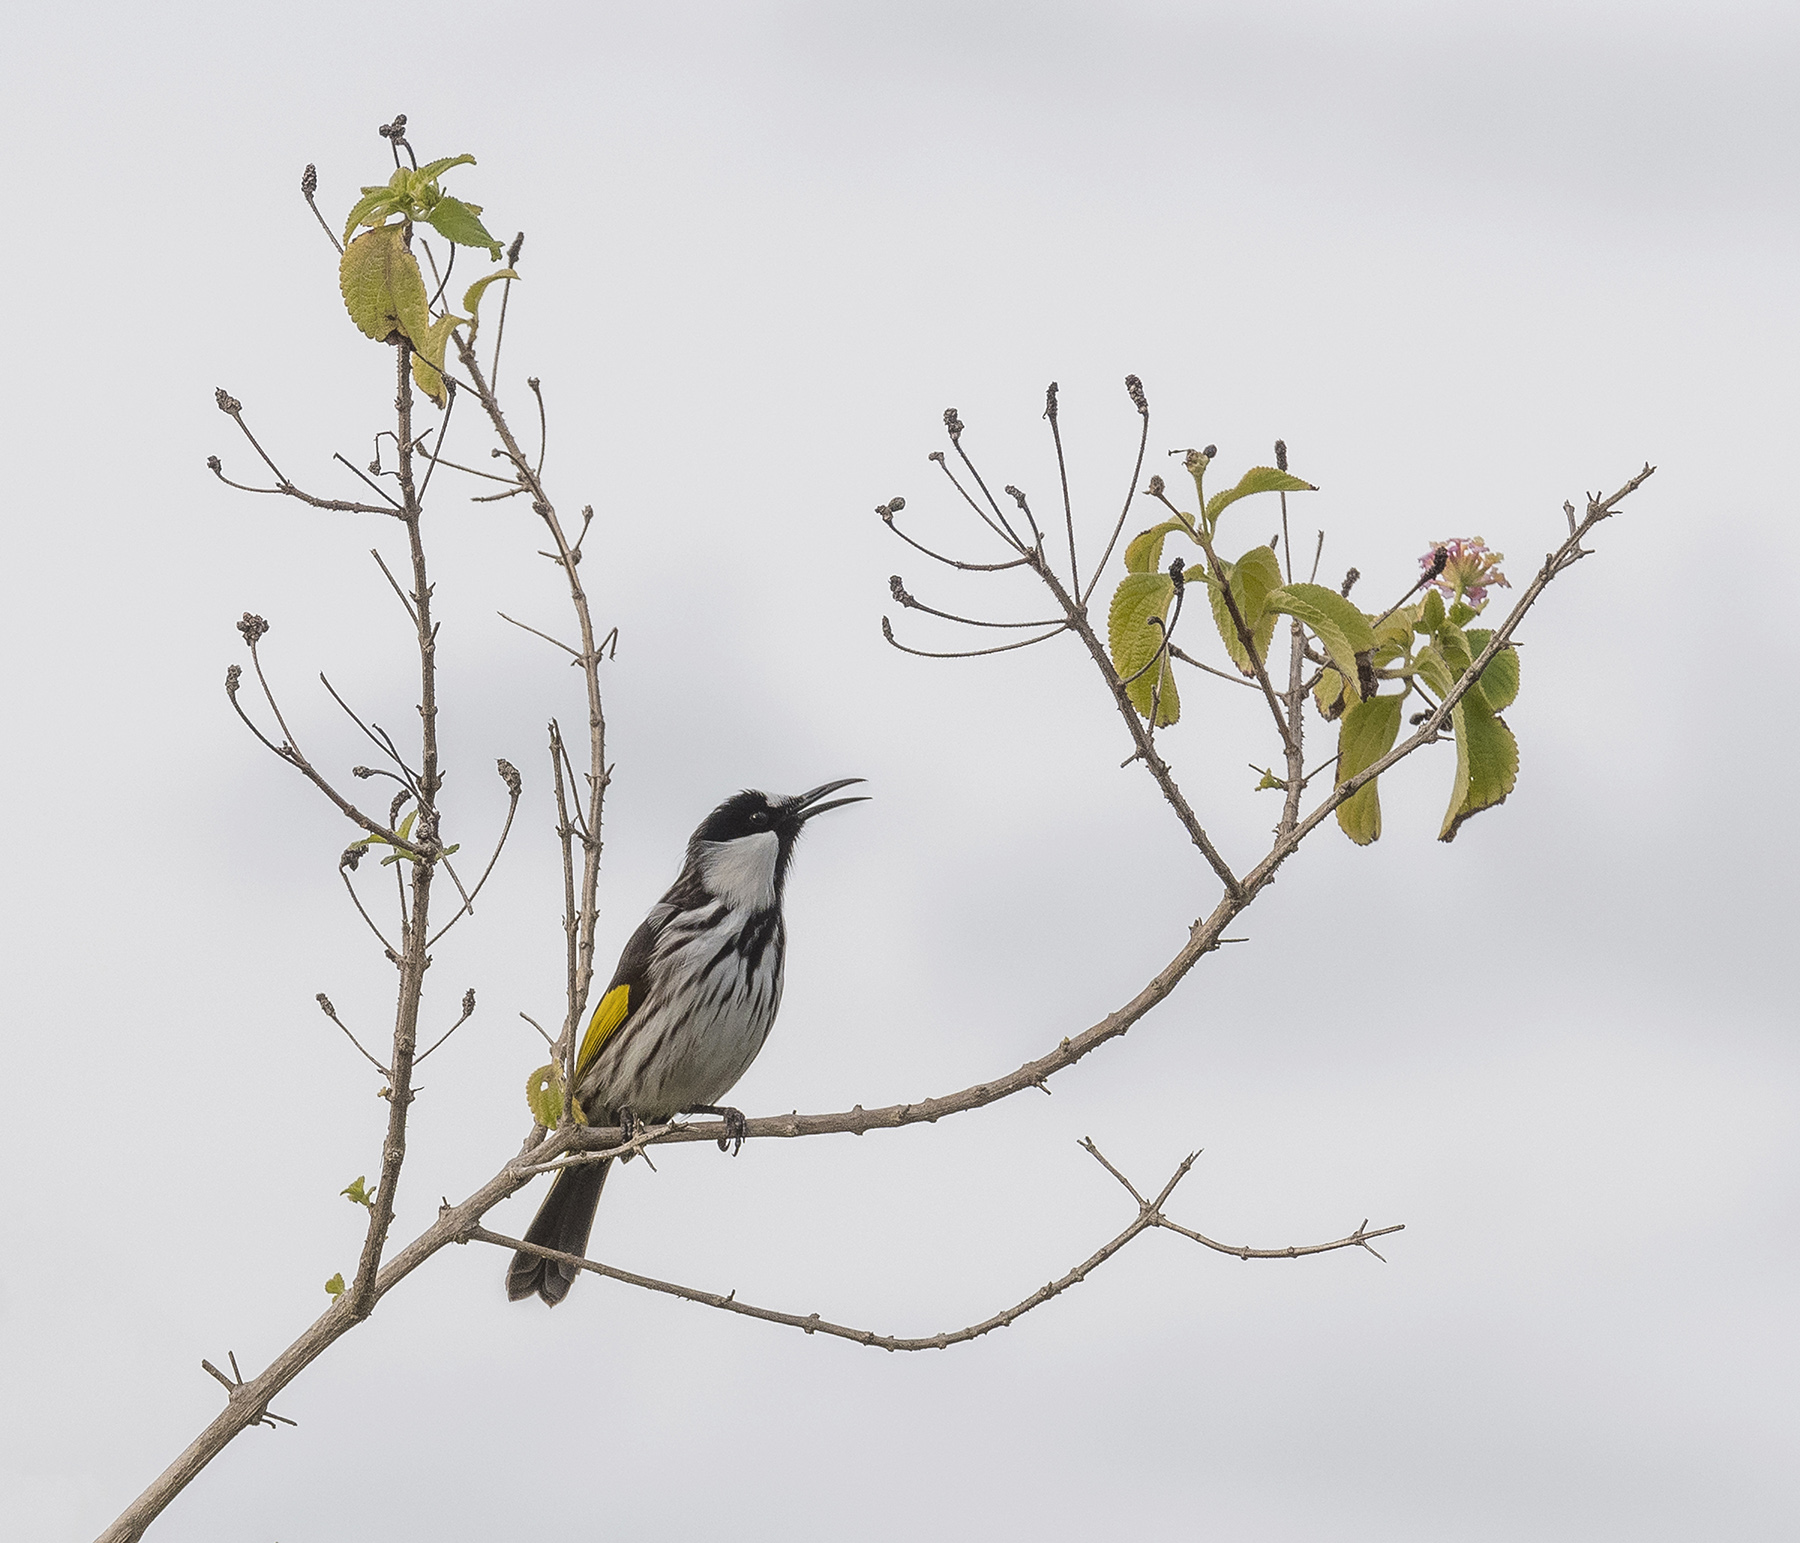 White-cheeked Honeyeater Sings by Finley Woodforth